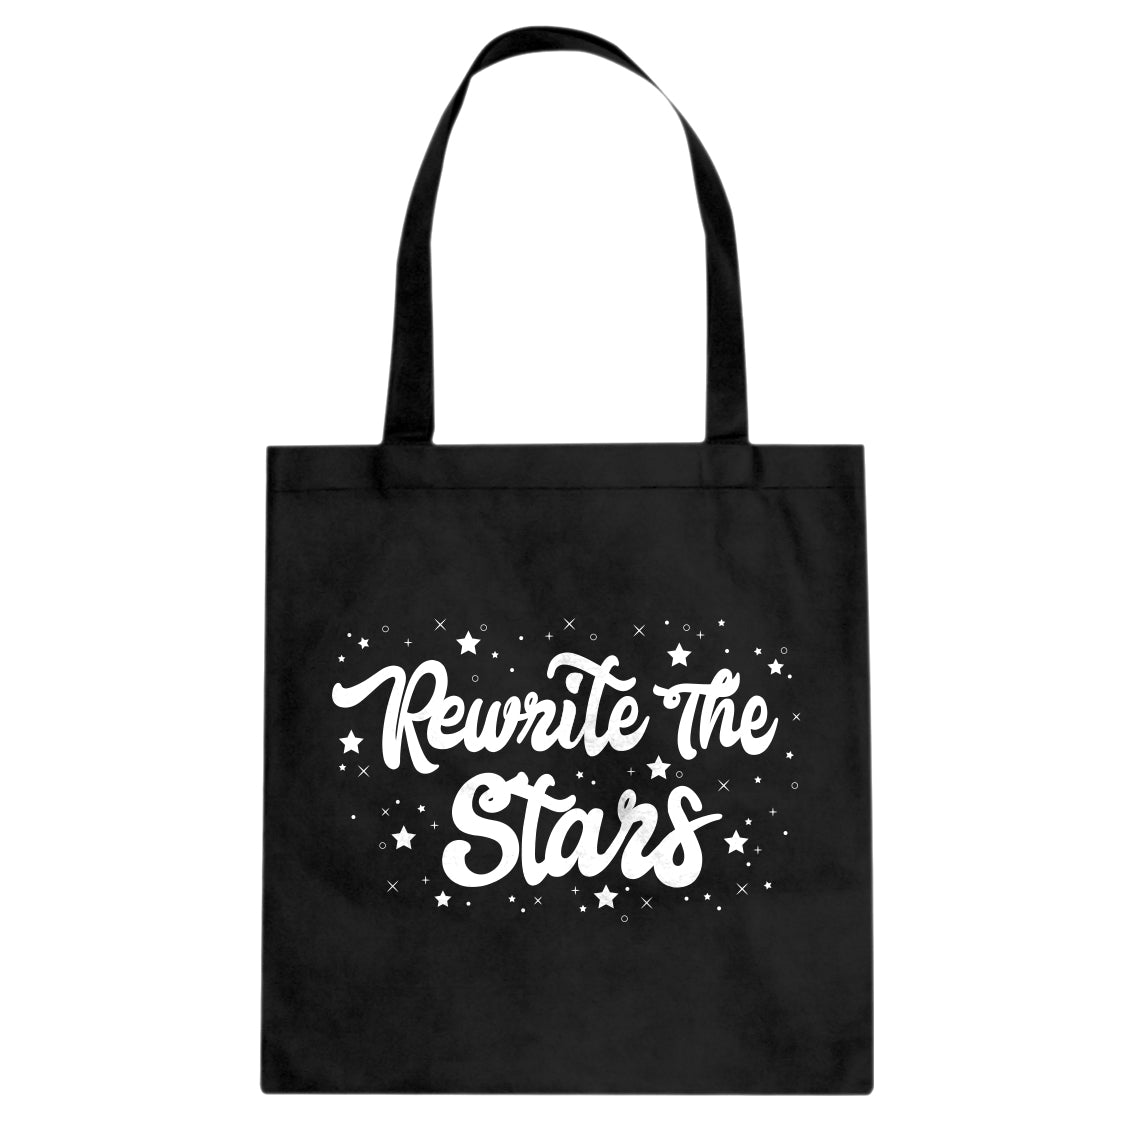 Tote Rewrite the Stars Canvas Tote Bag